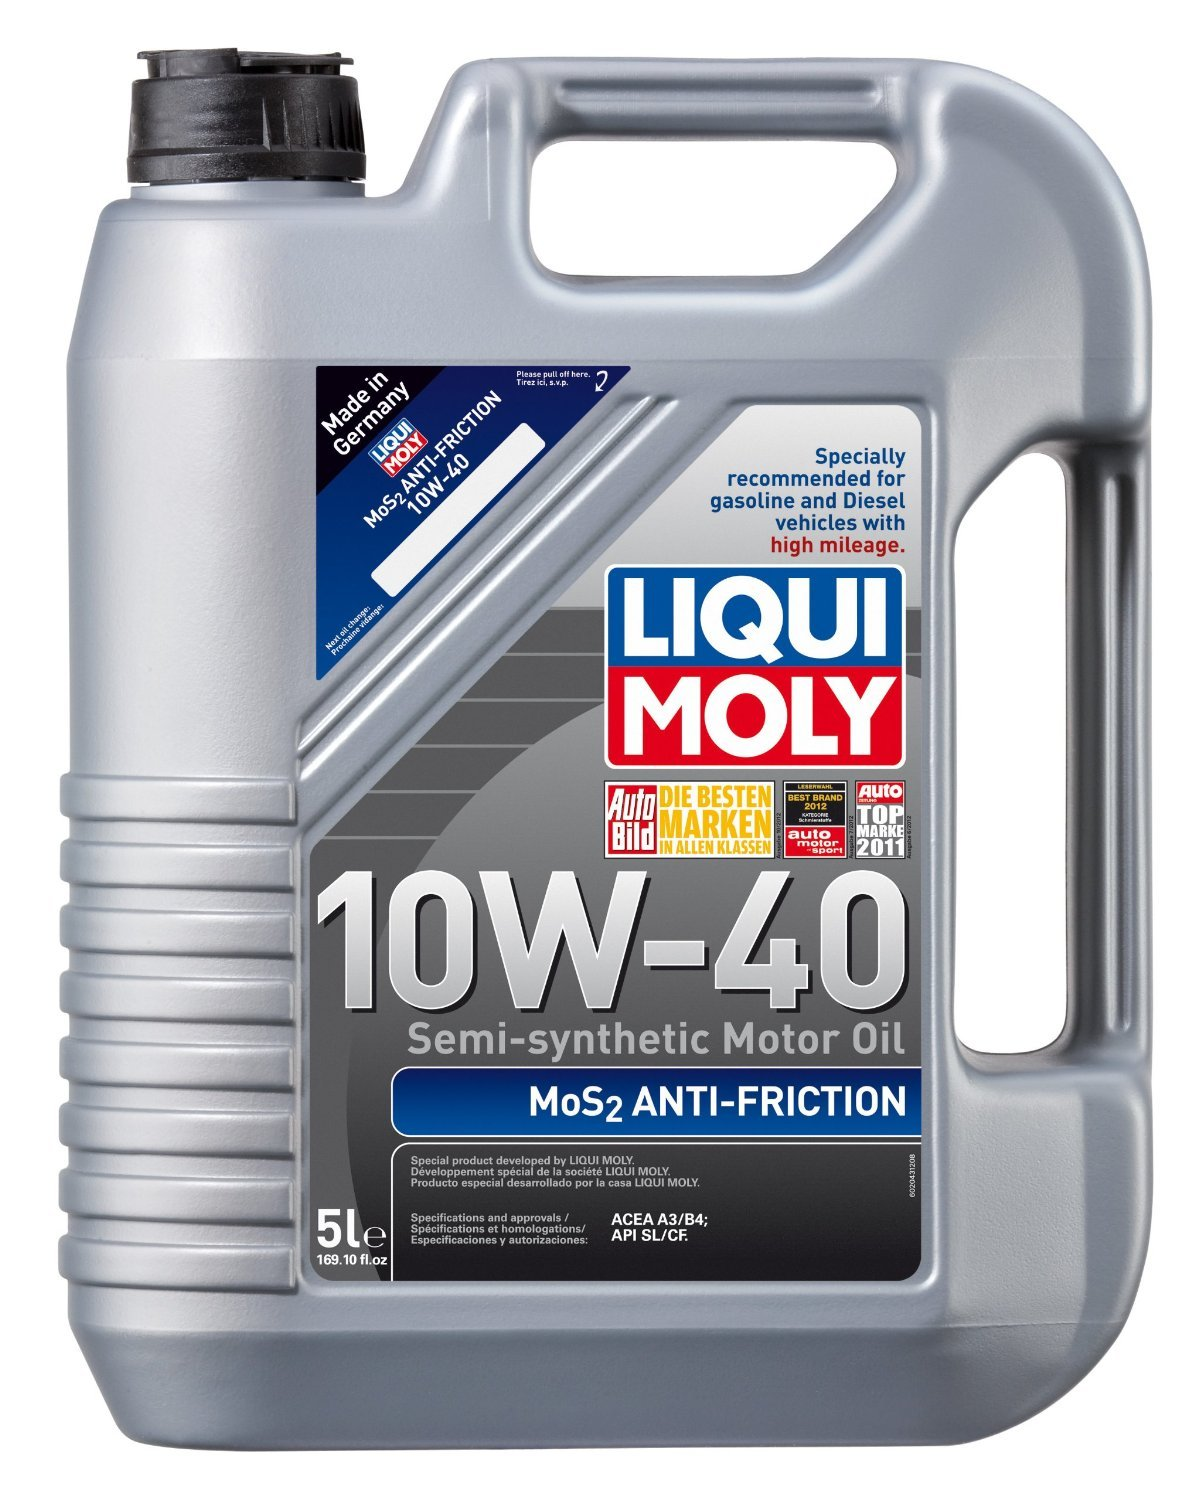 Liqui Moly (2043-4PK) MoS2 Anti-Friction 10W-40 Motor Oil - 1 Liter, (Pack of 4)